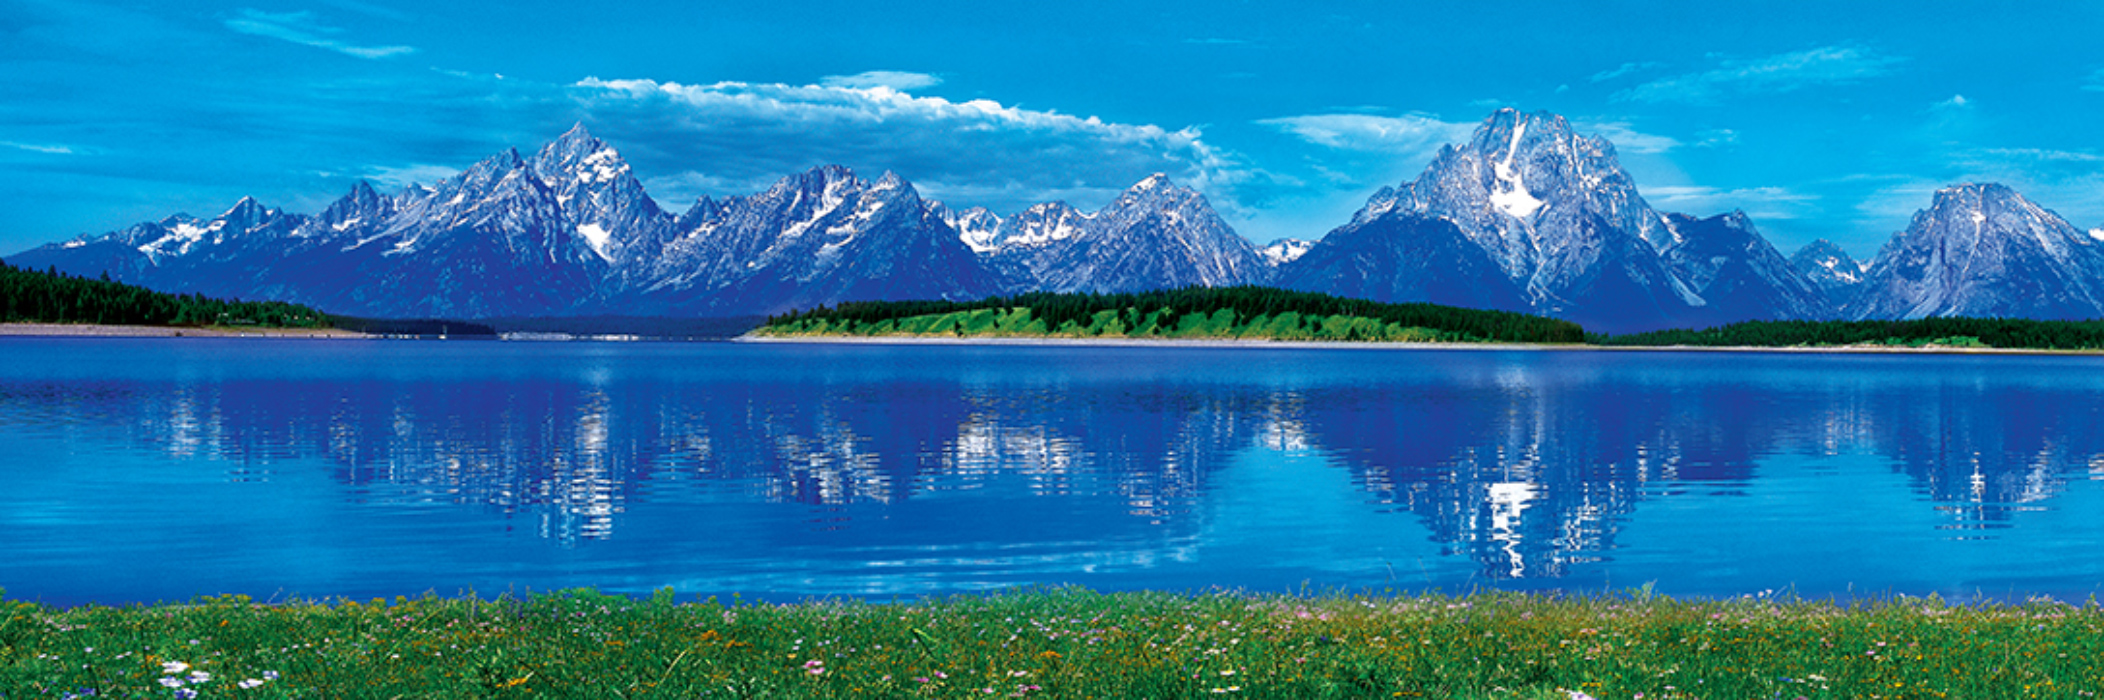 Grand Tetons National Parks Jigsaw Puzzle